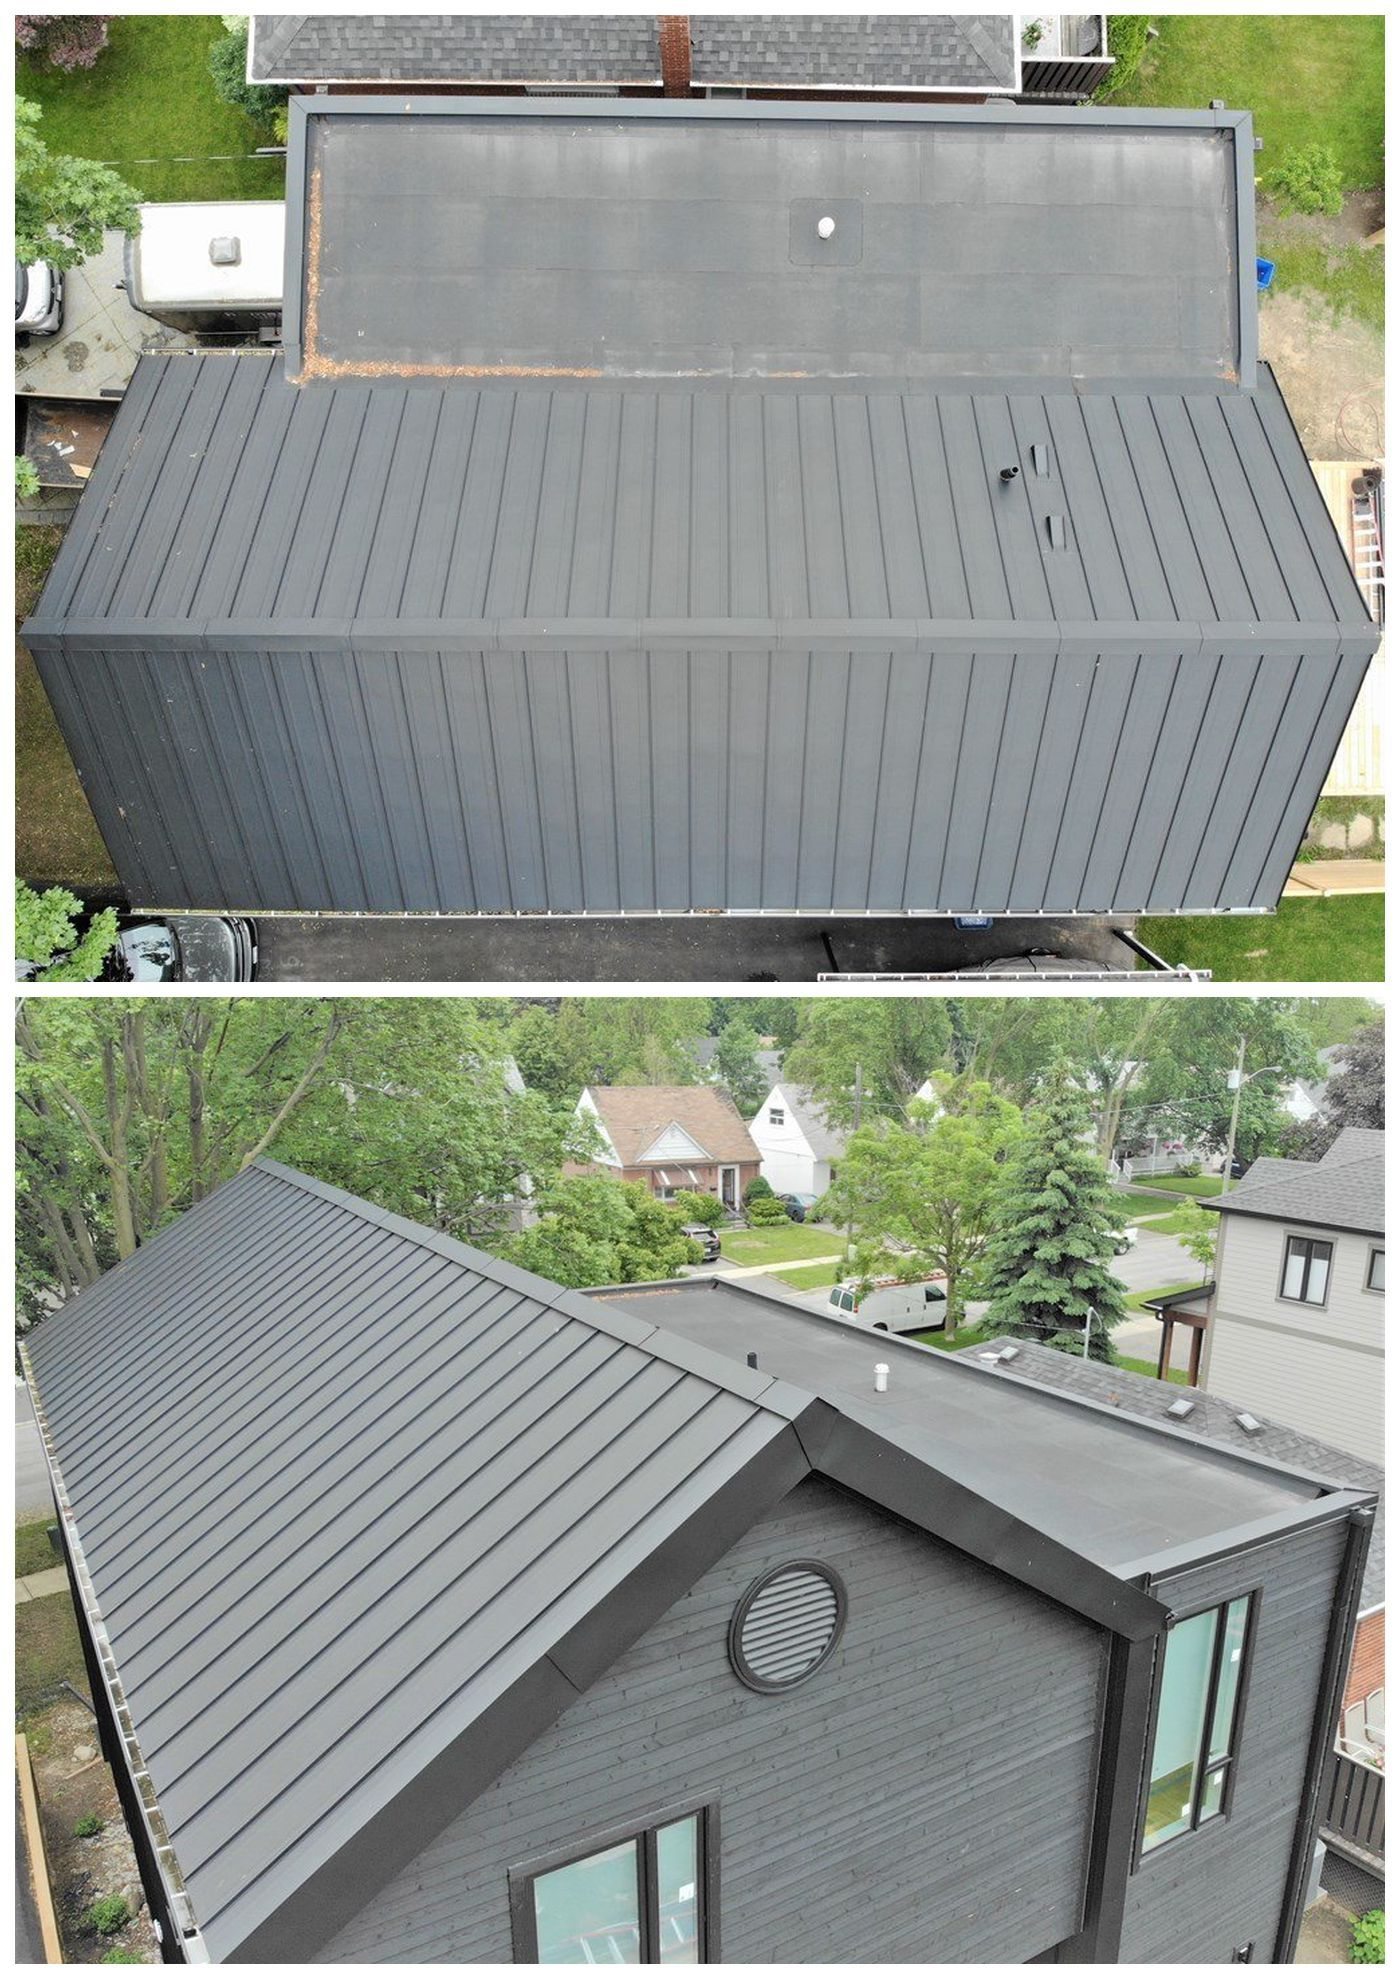 Below You Will Find Information About Traditional Standing Seam Metal Roof Metalroof Metalroofing Metalr Standing Seam Metal Roof Metal Roof Standing Seam